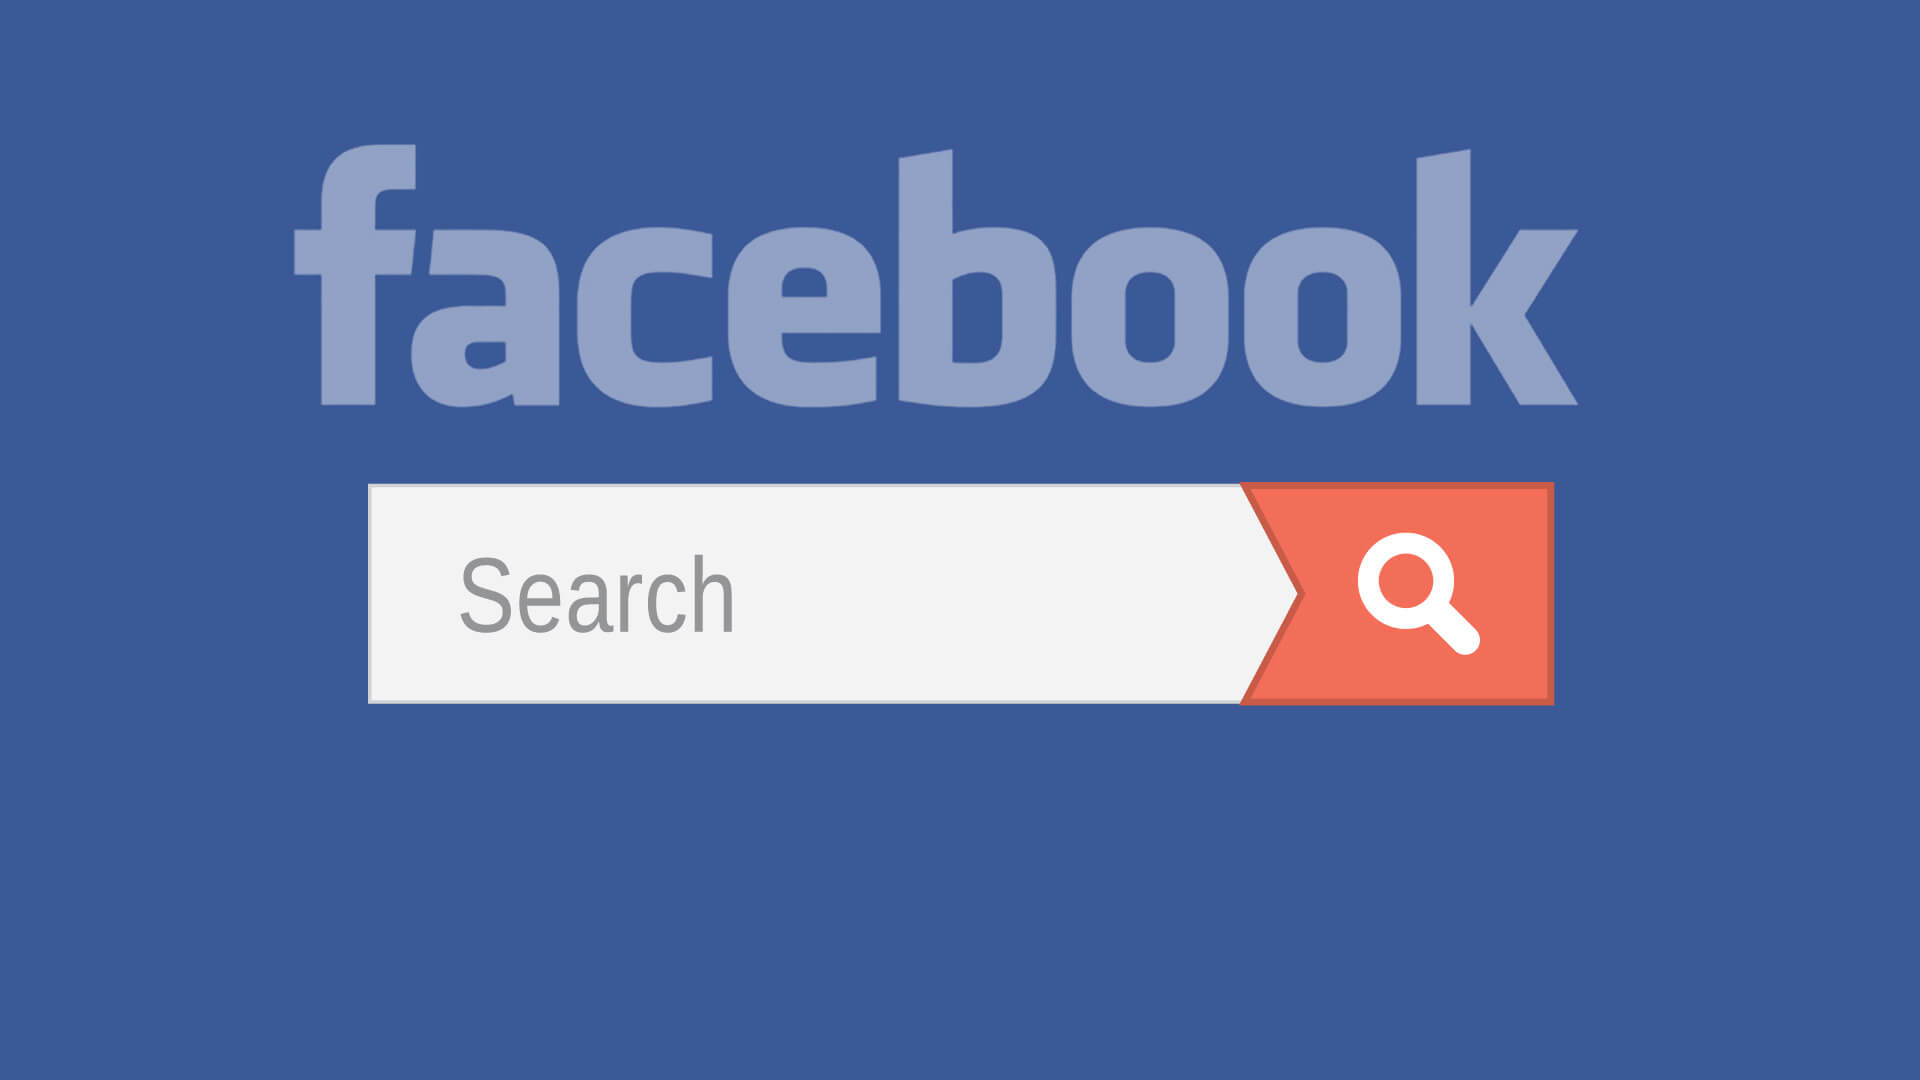 Facebook's Hello App Another Incremental Step Toward Local